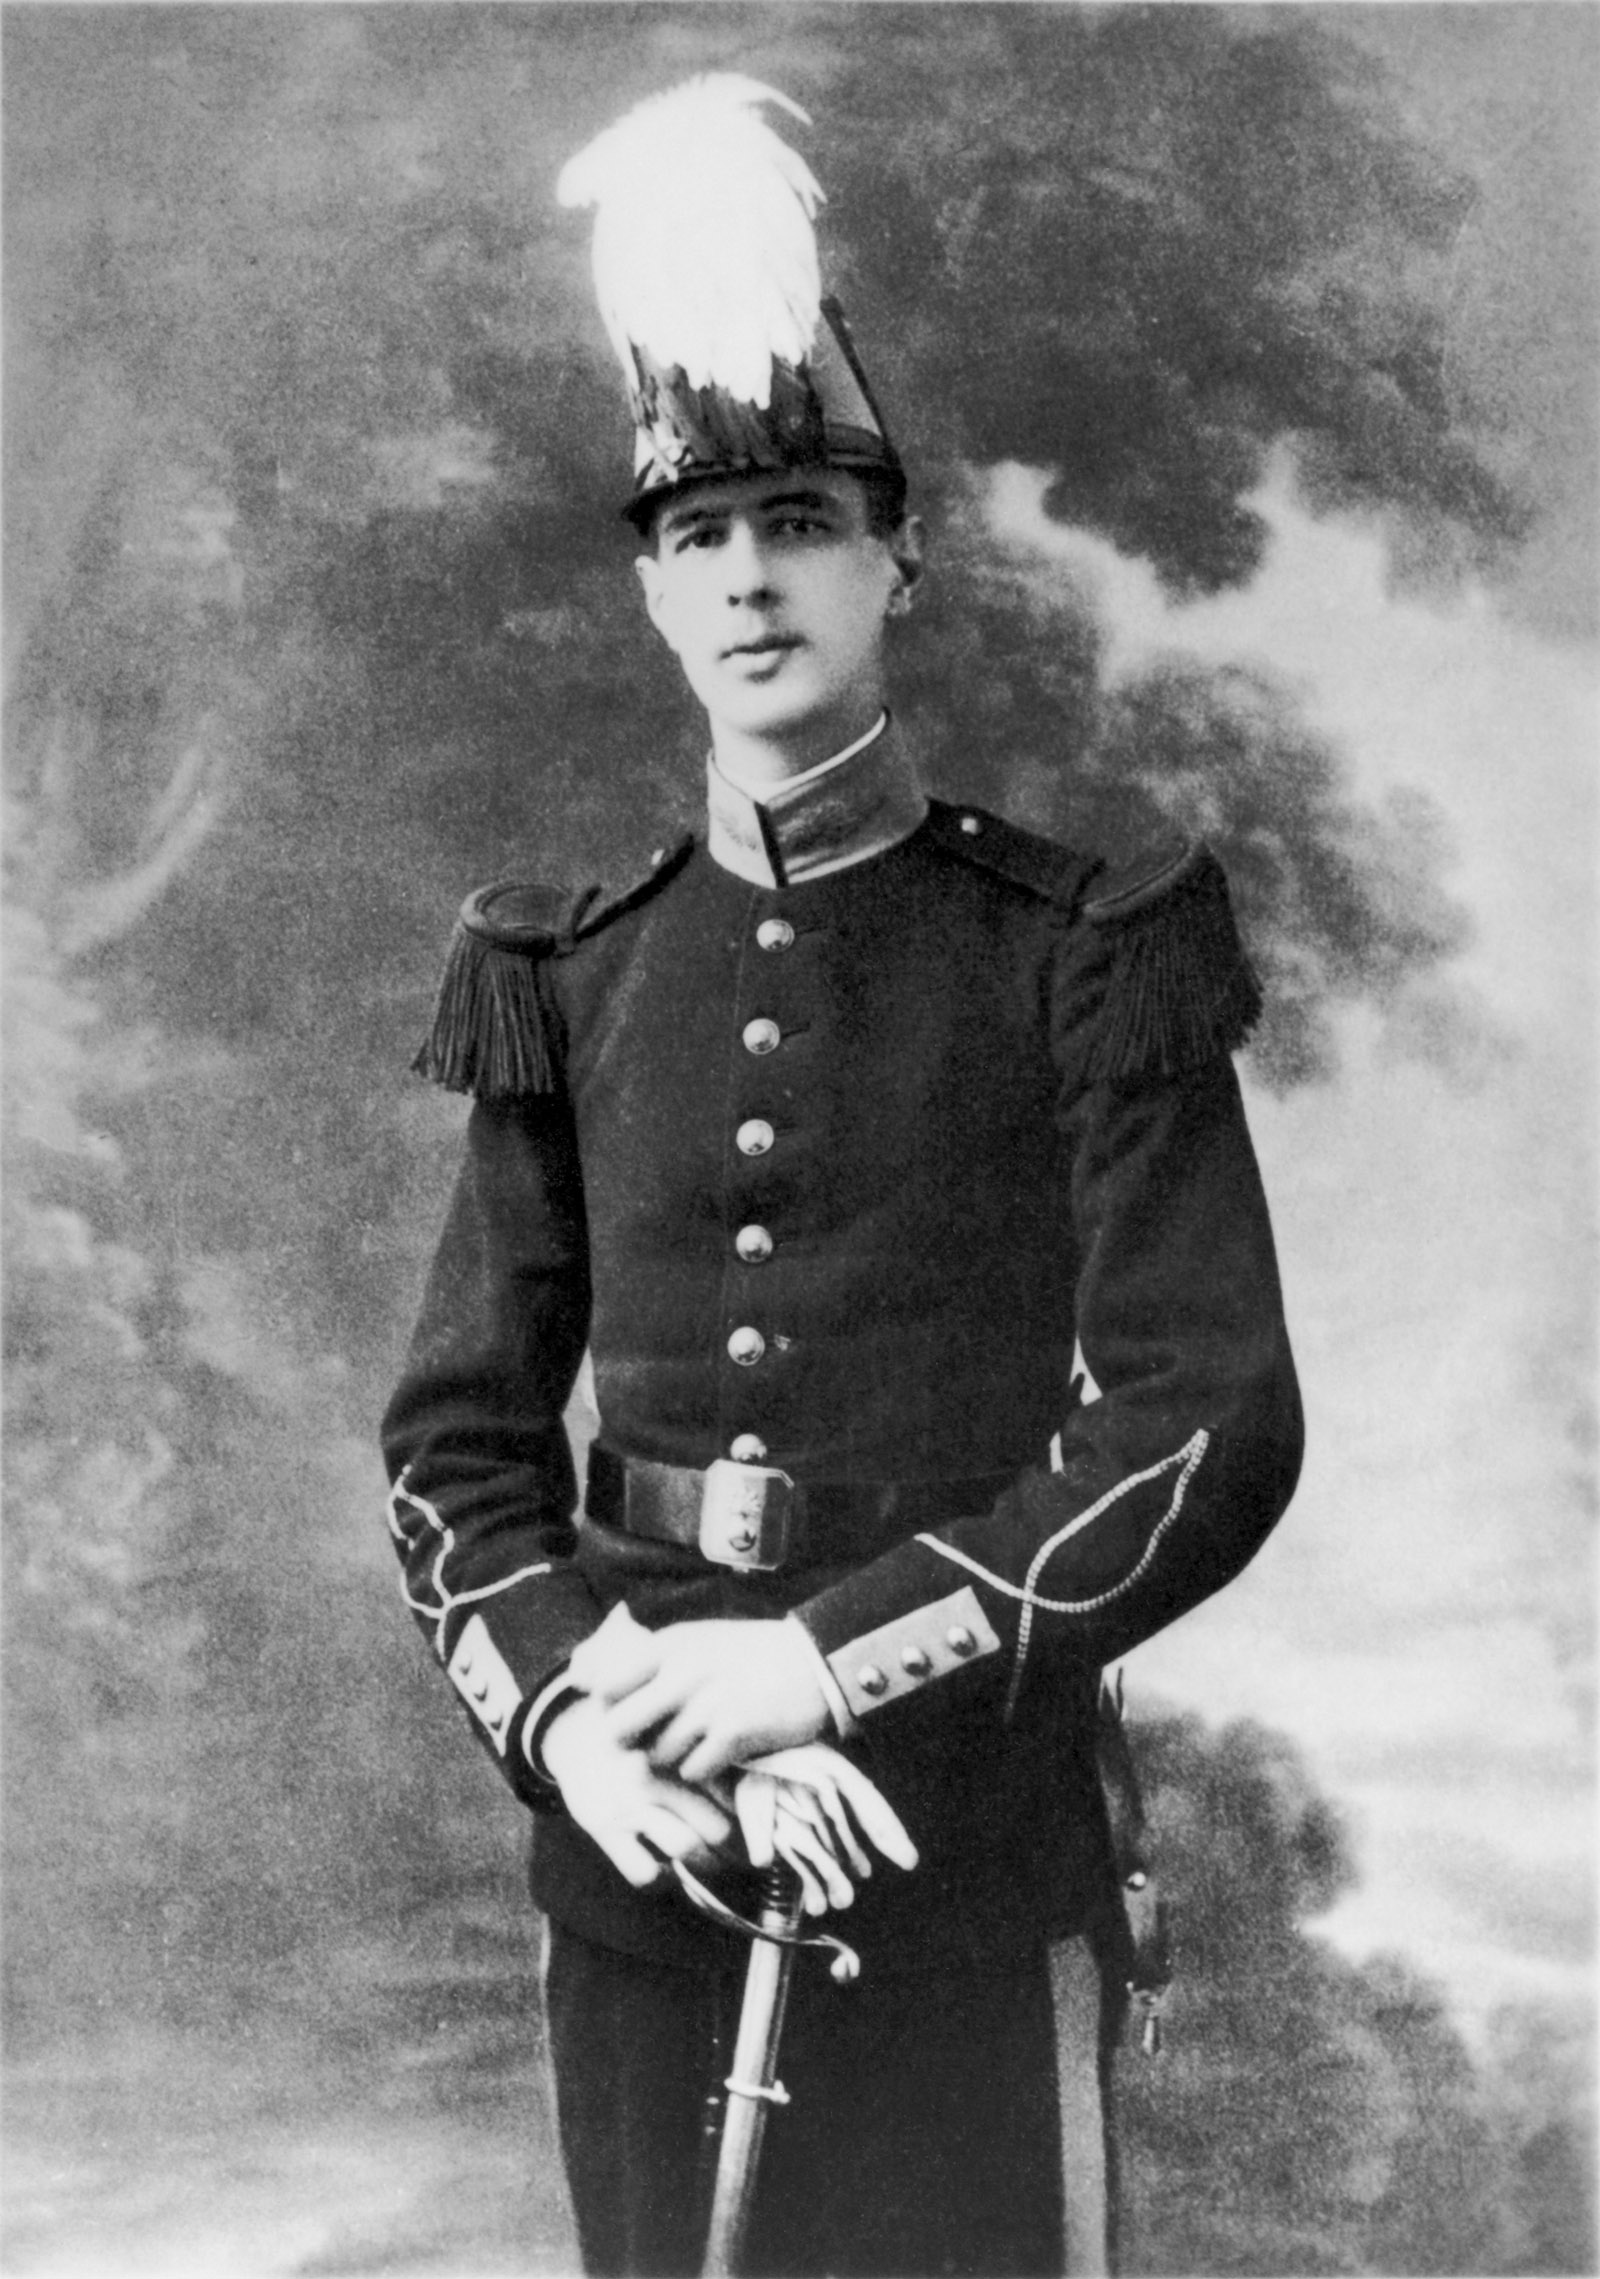 Charles de Gaulle at the French military academy St. Cyr, 1912